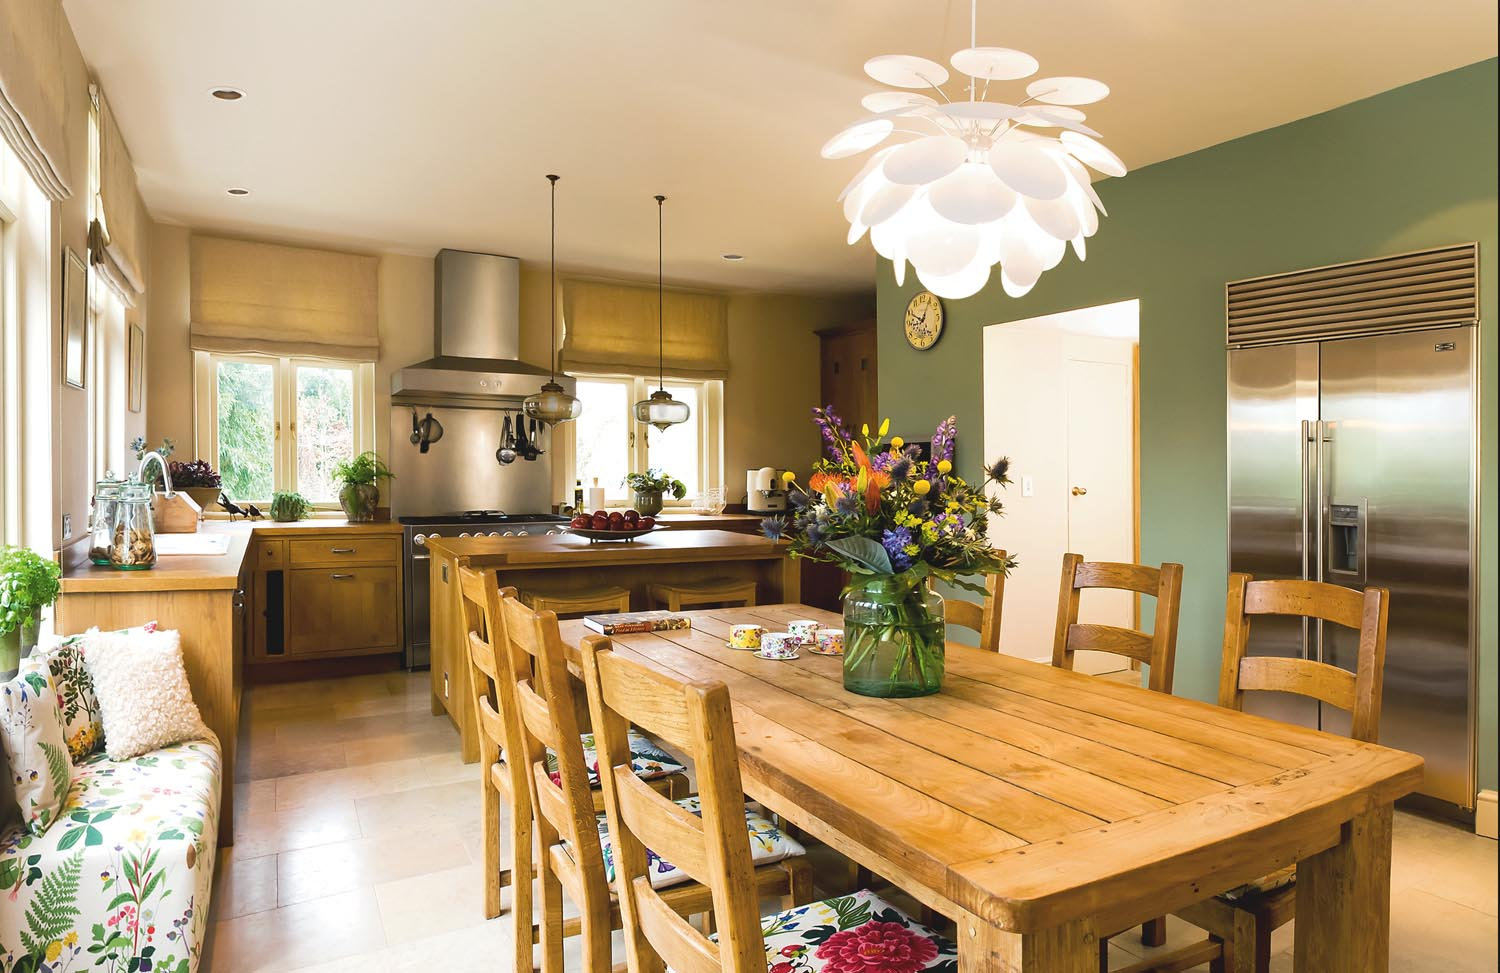 A subtle hint of floral is introduced to the country-inspired kitchen